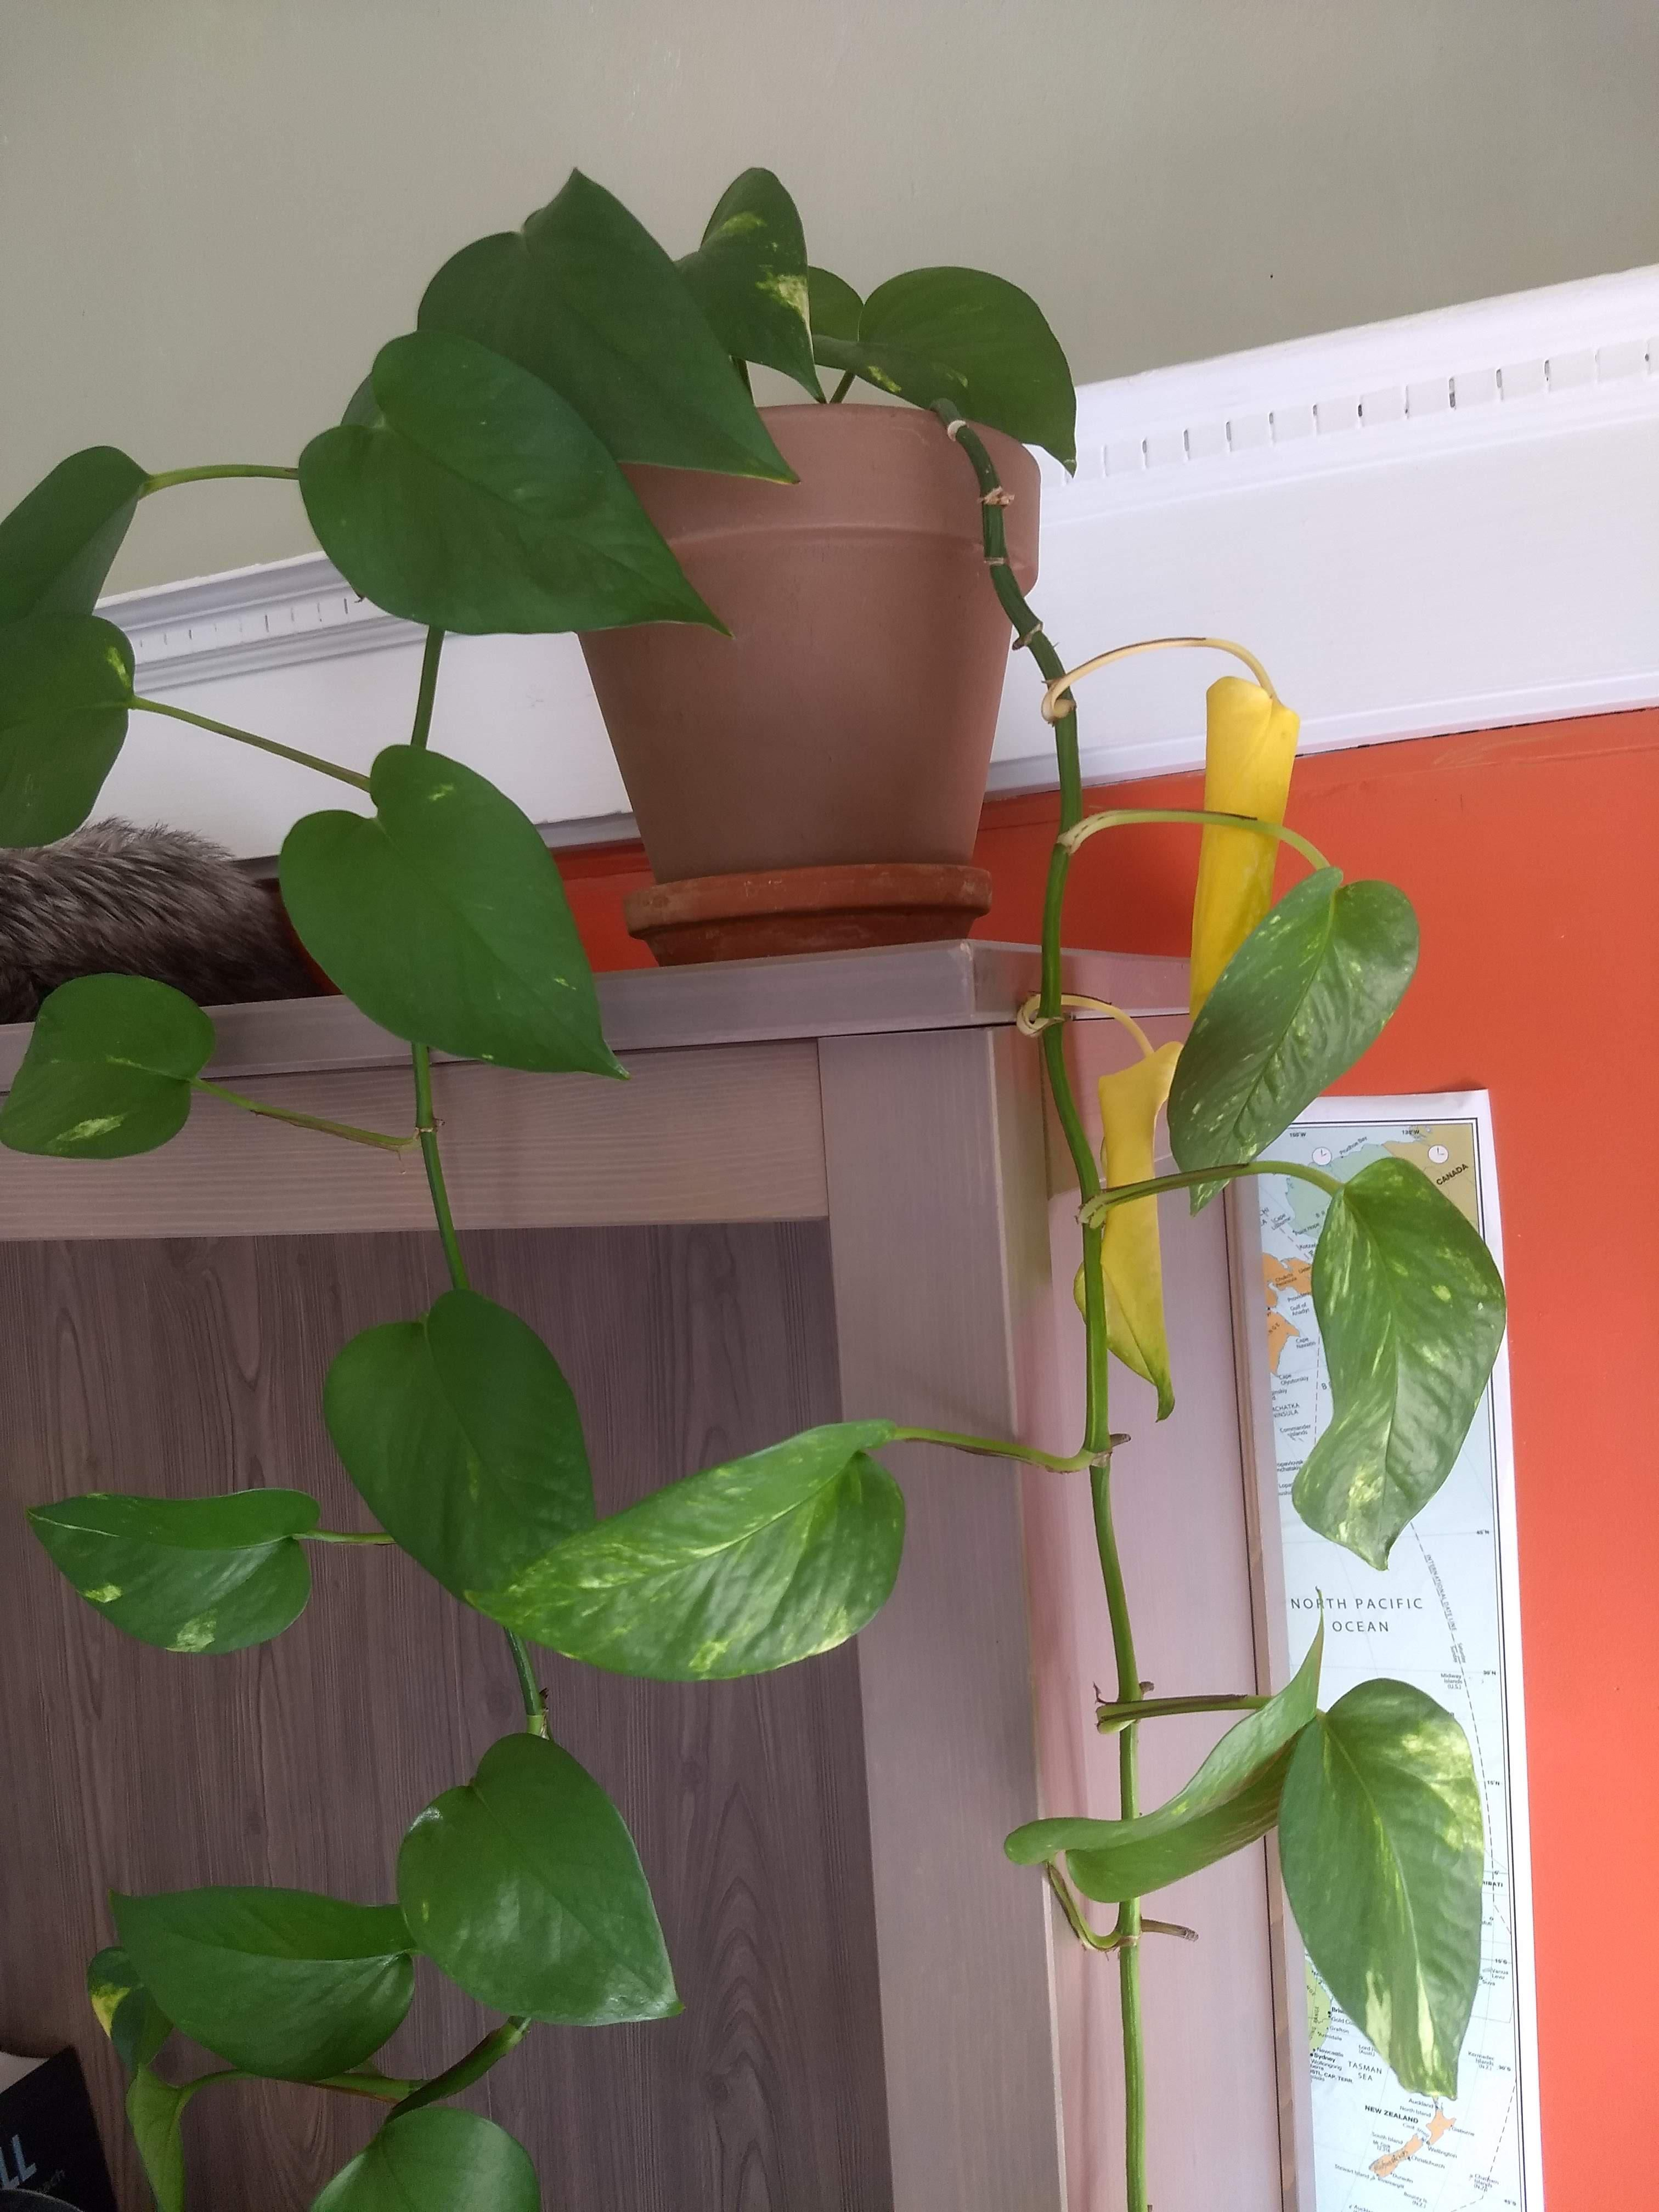 My Pothos Has One Stem Where The Leaves At The Base Are Turning Yellow But The Other Stems Are Fi Plant Leaves Turning Yellow Plant Leaves Turning Plant Leaves